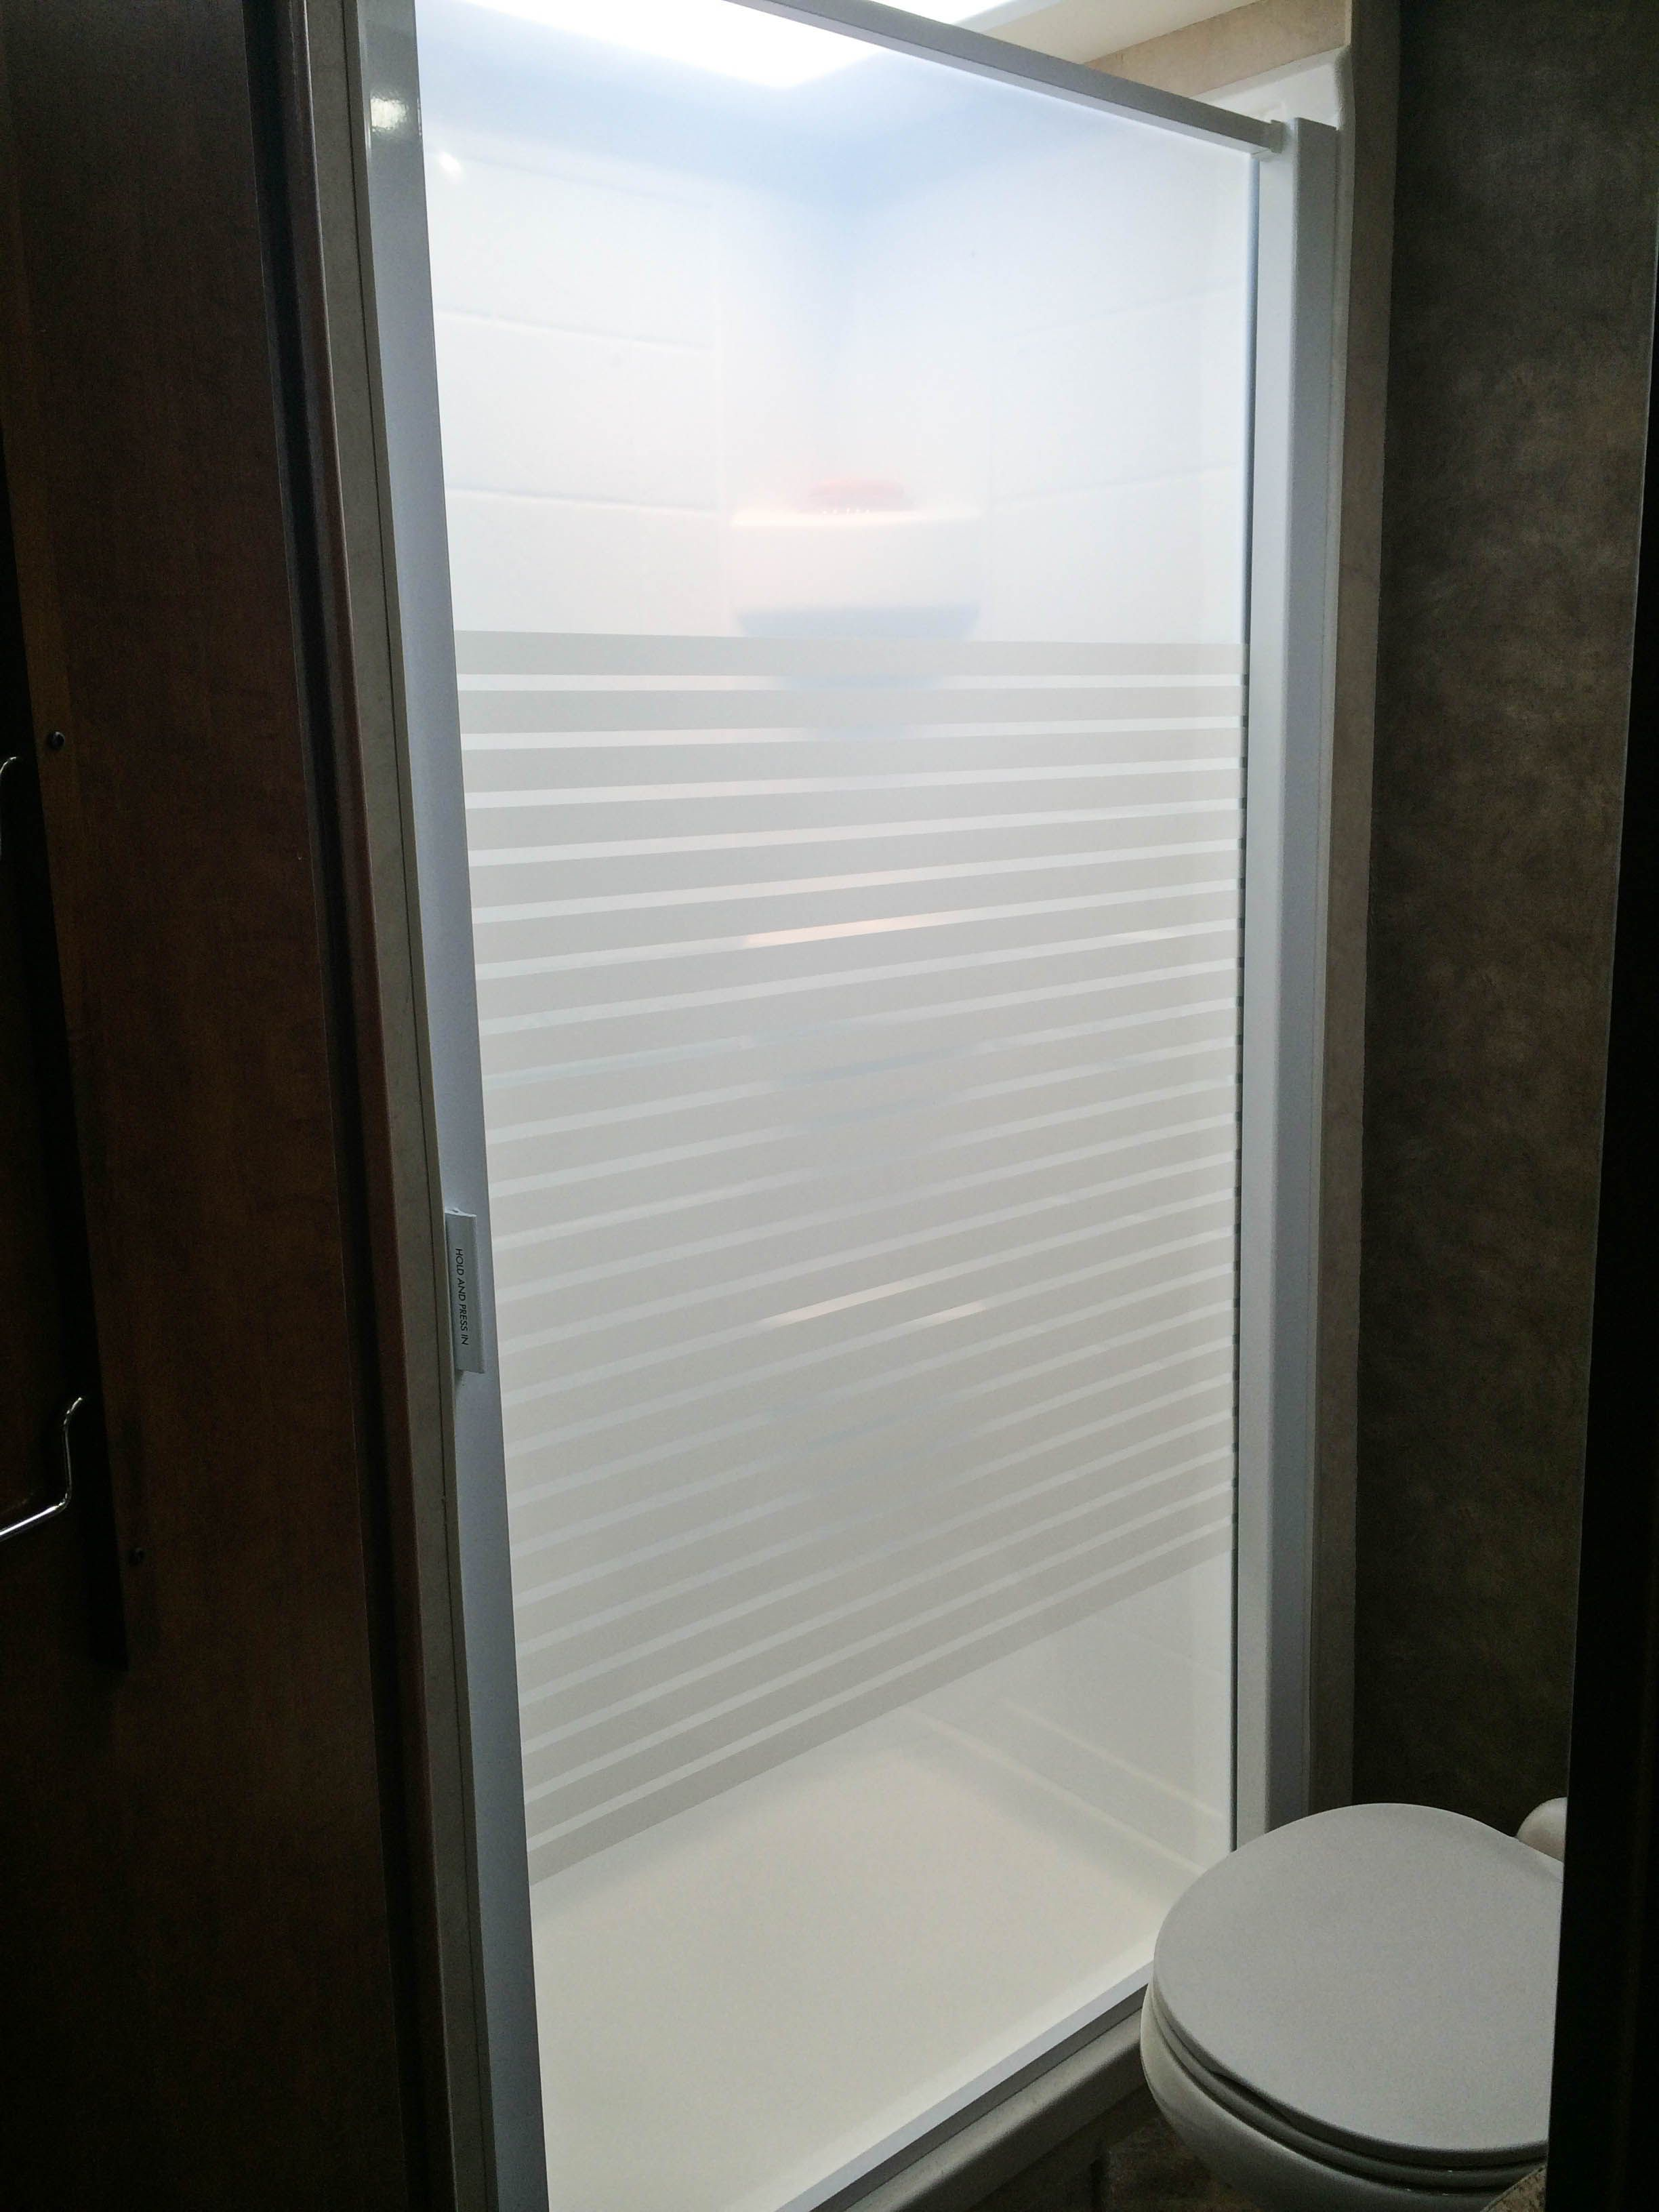 Have You Yet Heard About Our Retractable Shower Doors For Rvs